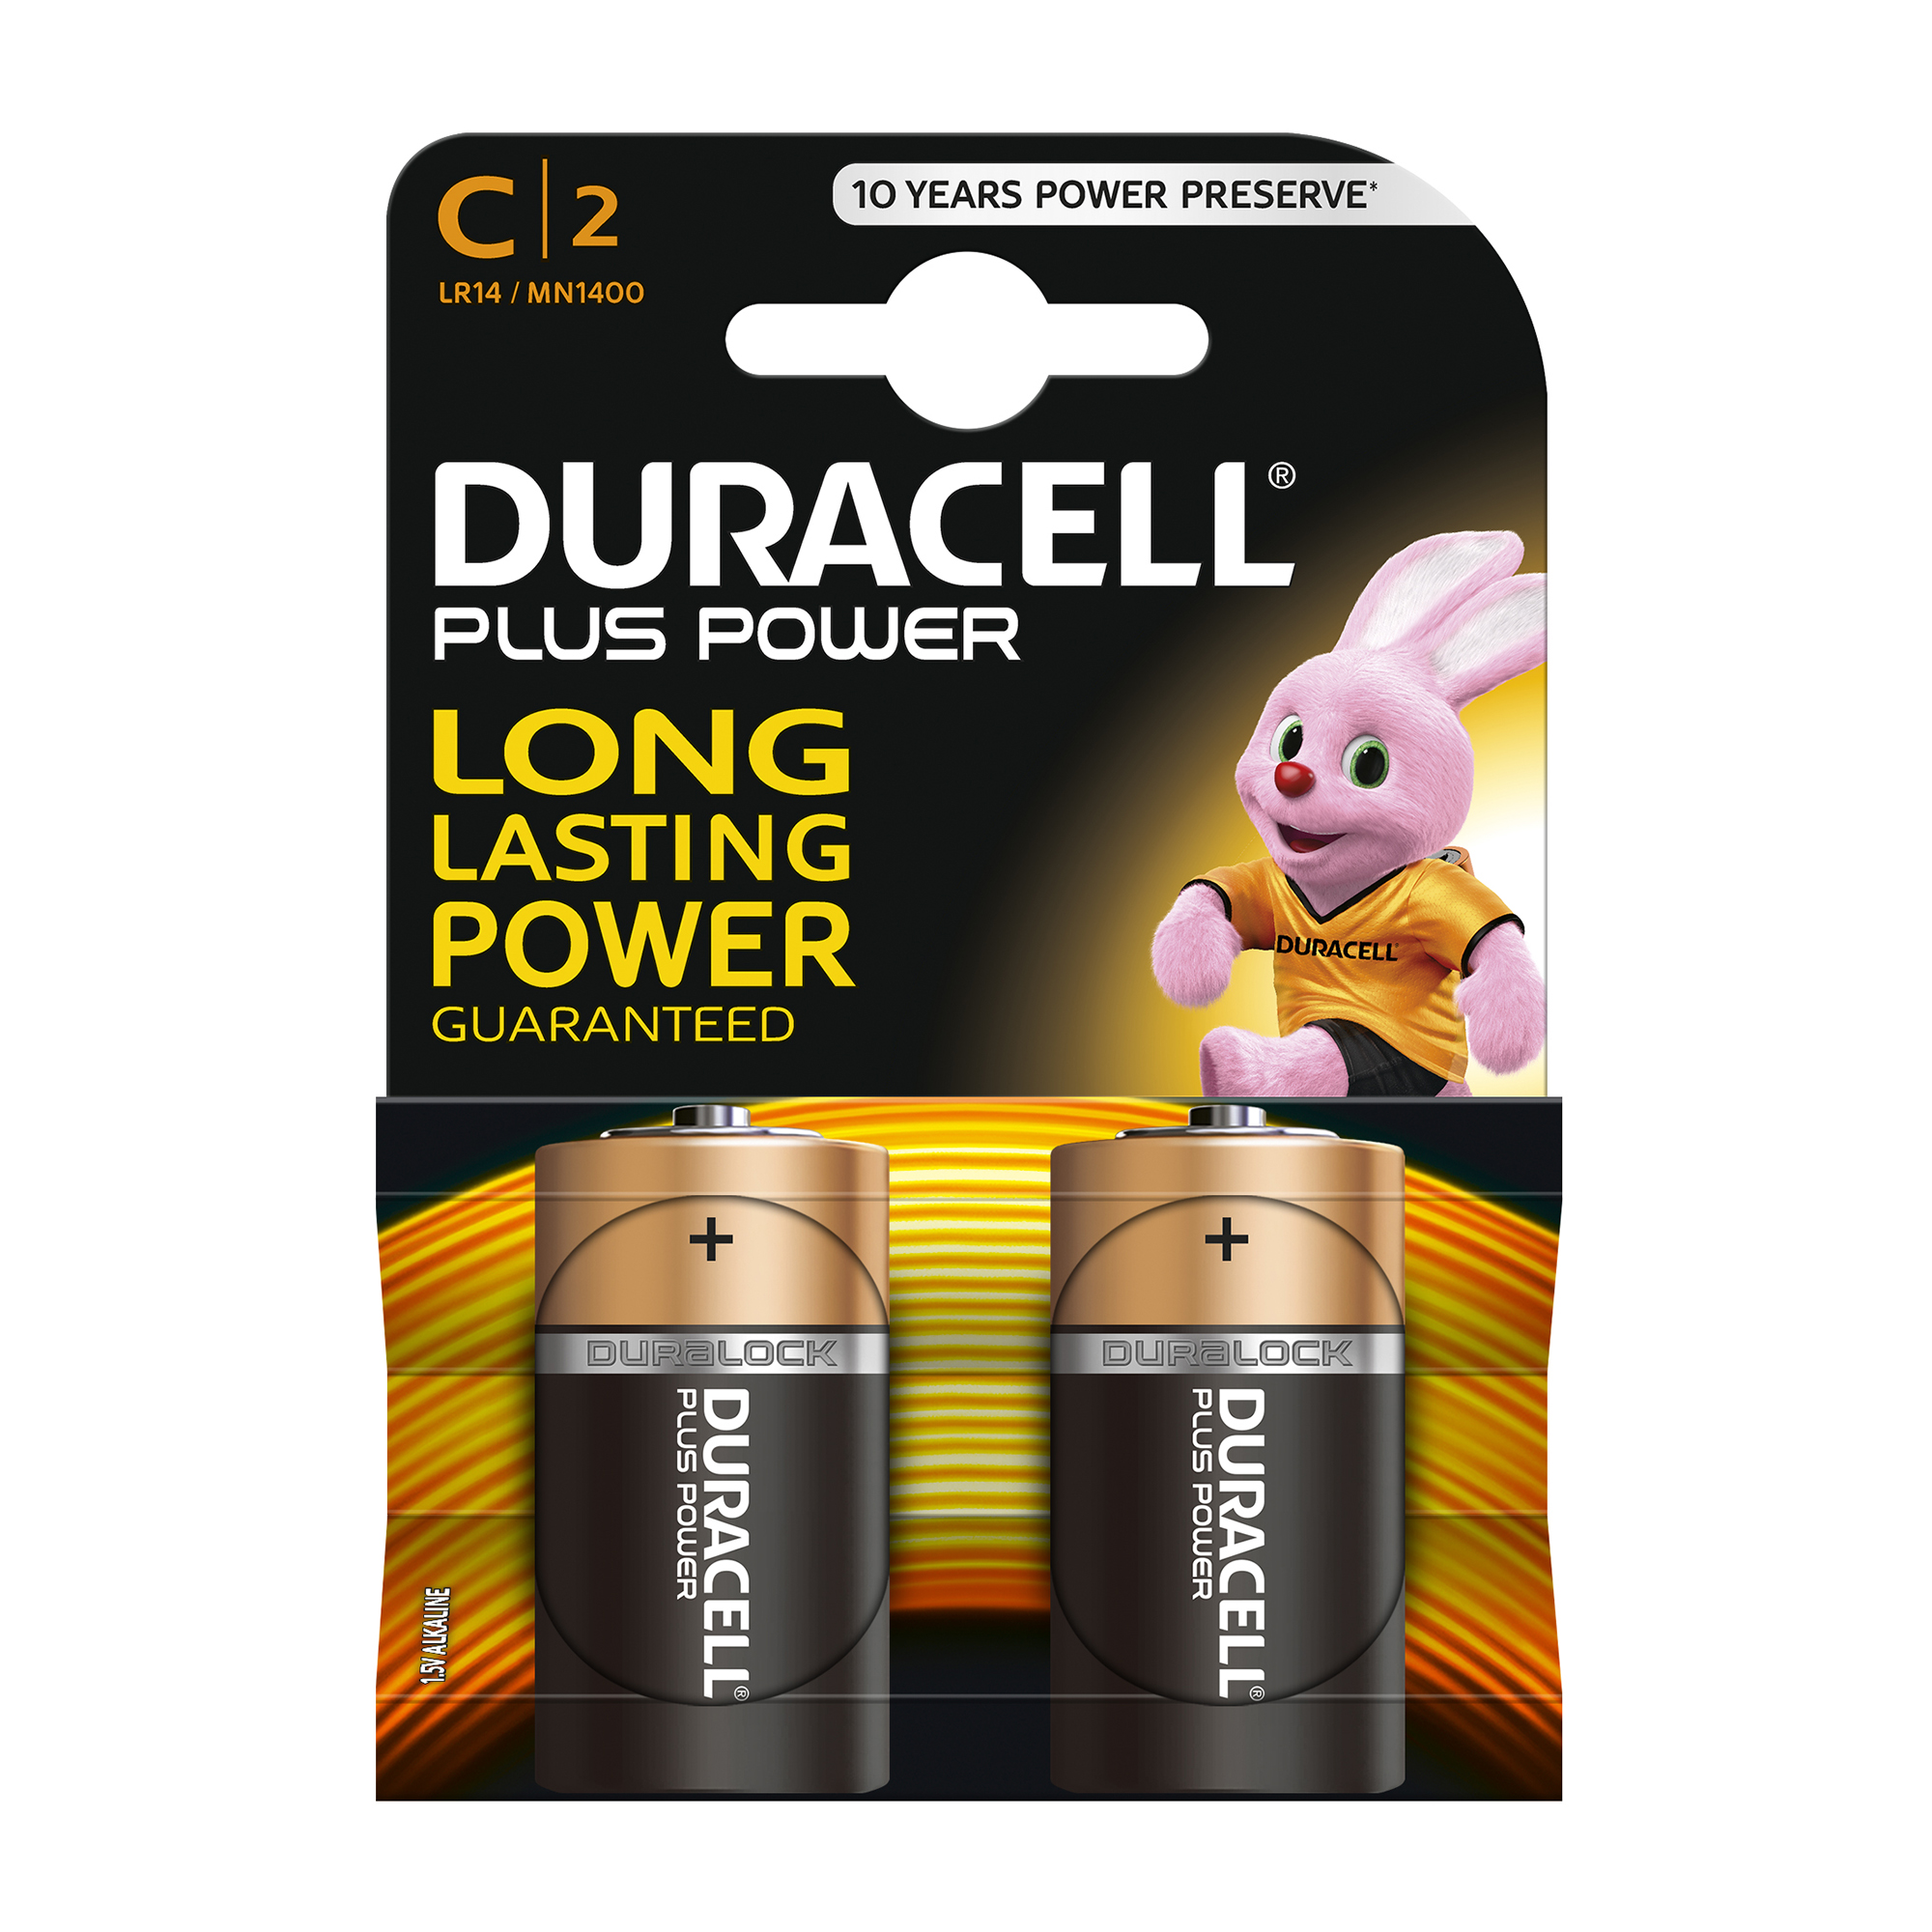 C Duracell Plus Power Battery Alkaline 1.5V C Ref 81275429 Pack 2